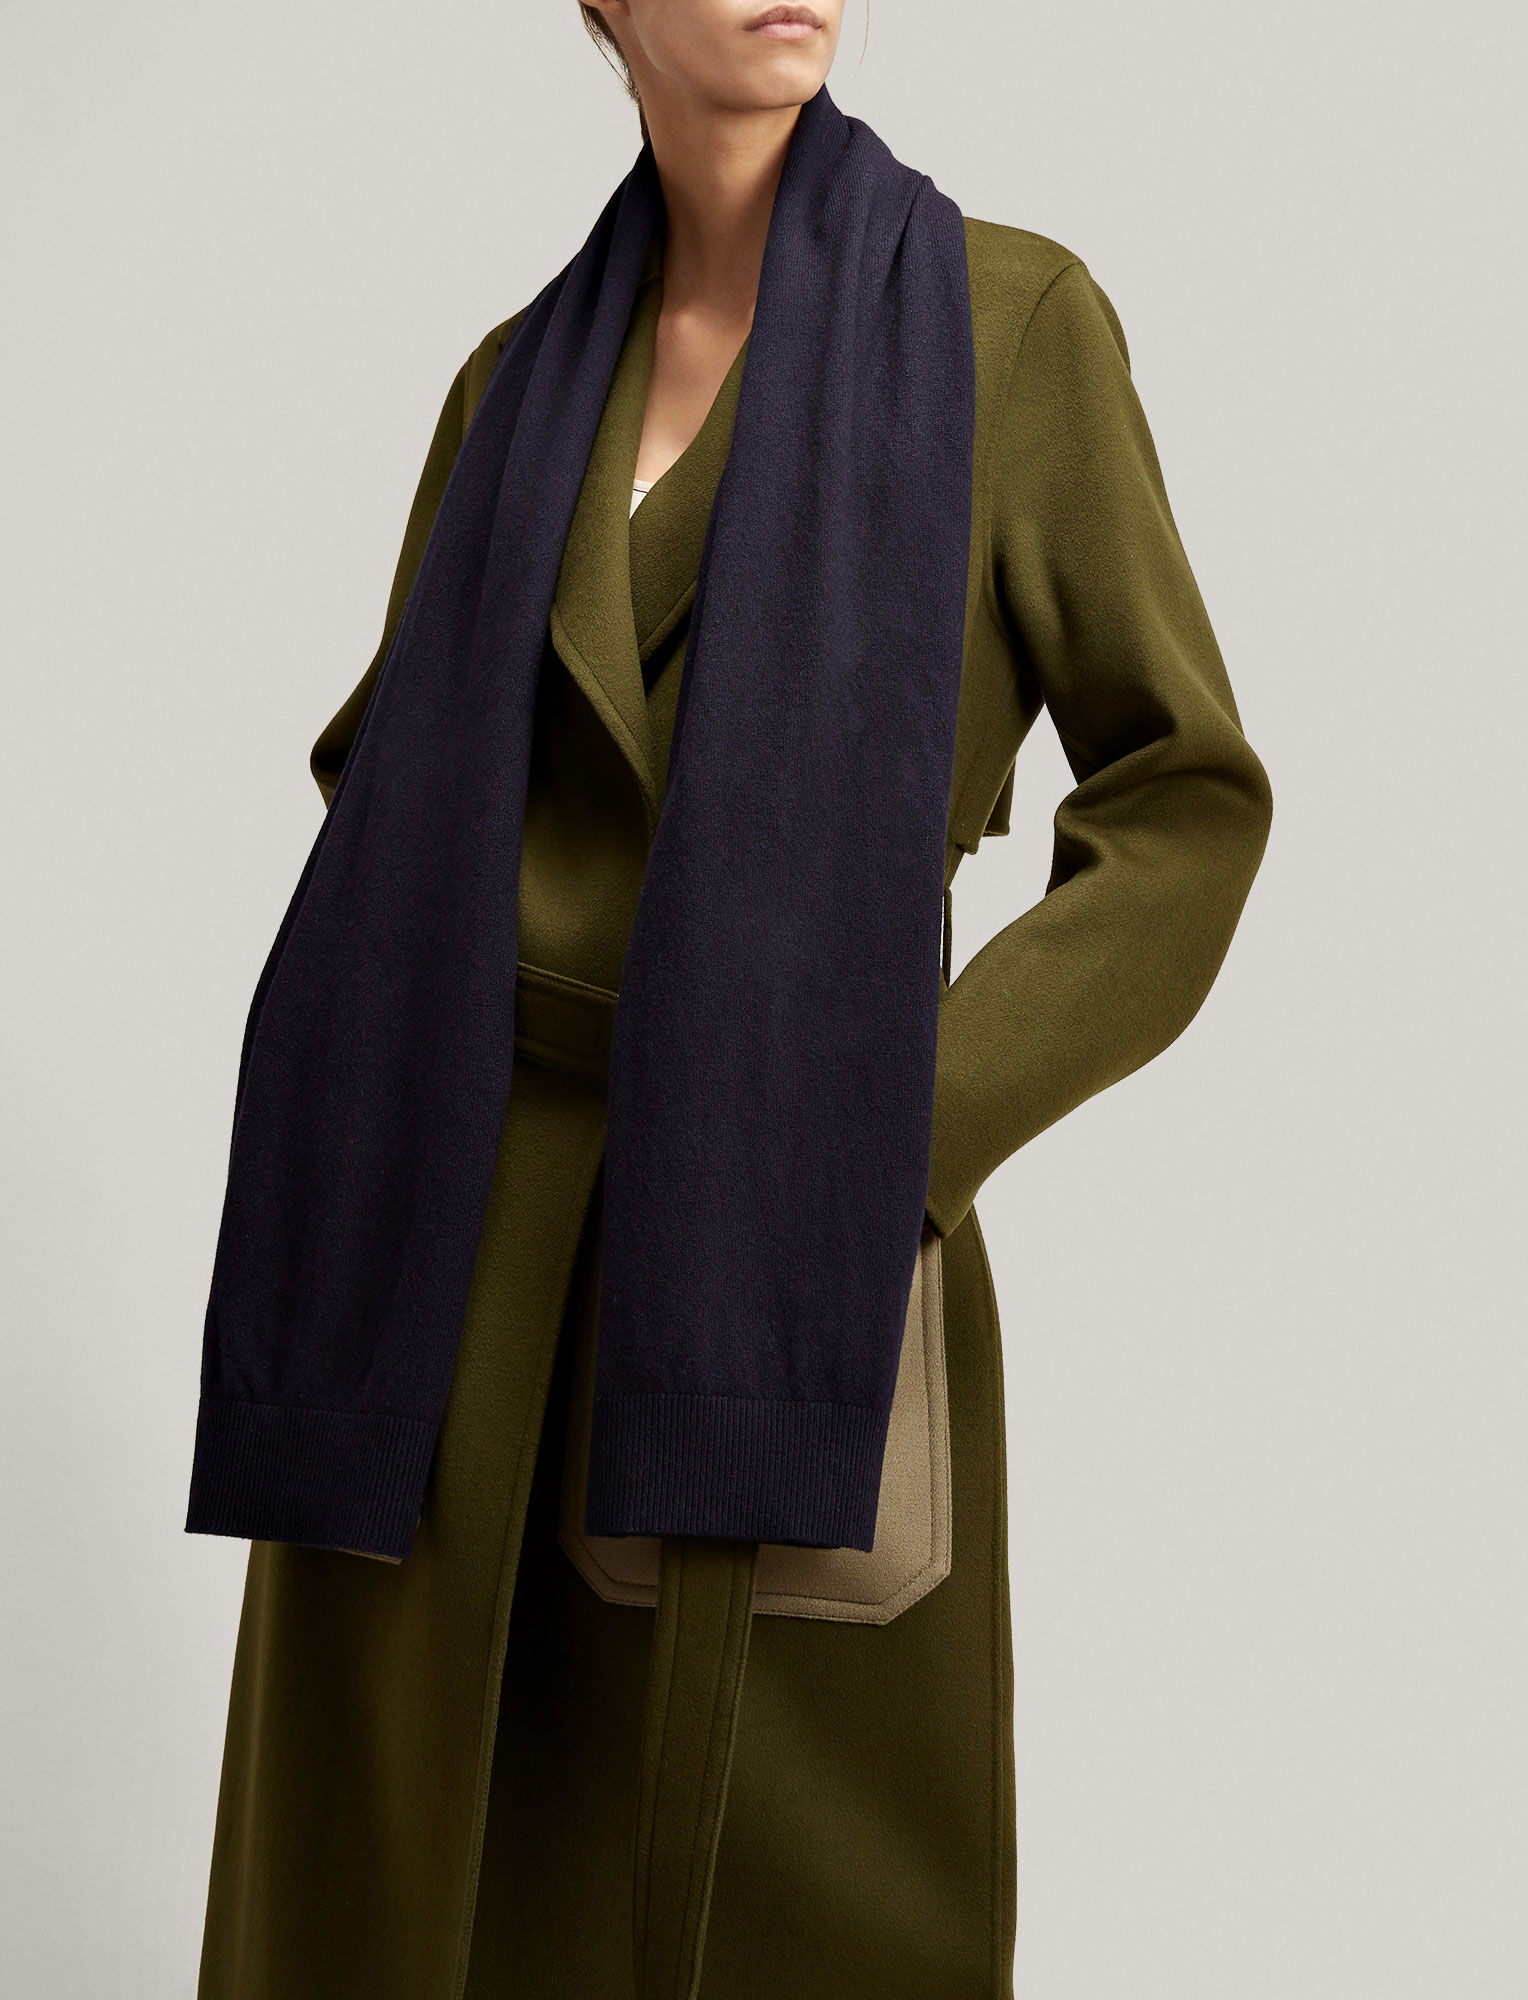 Joseph, Mongolian Cashmere Scarf, in NAVY